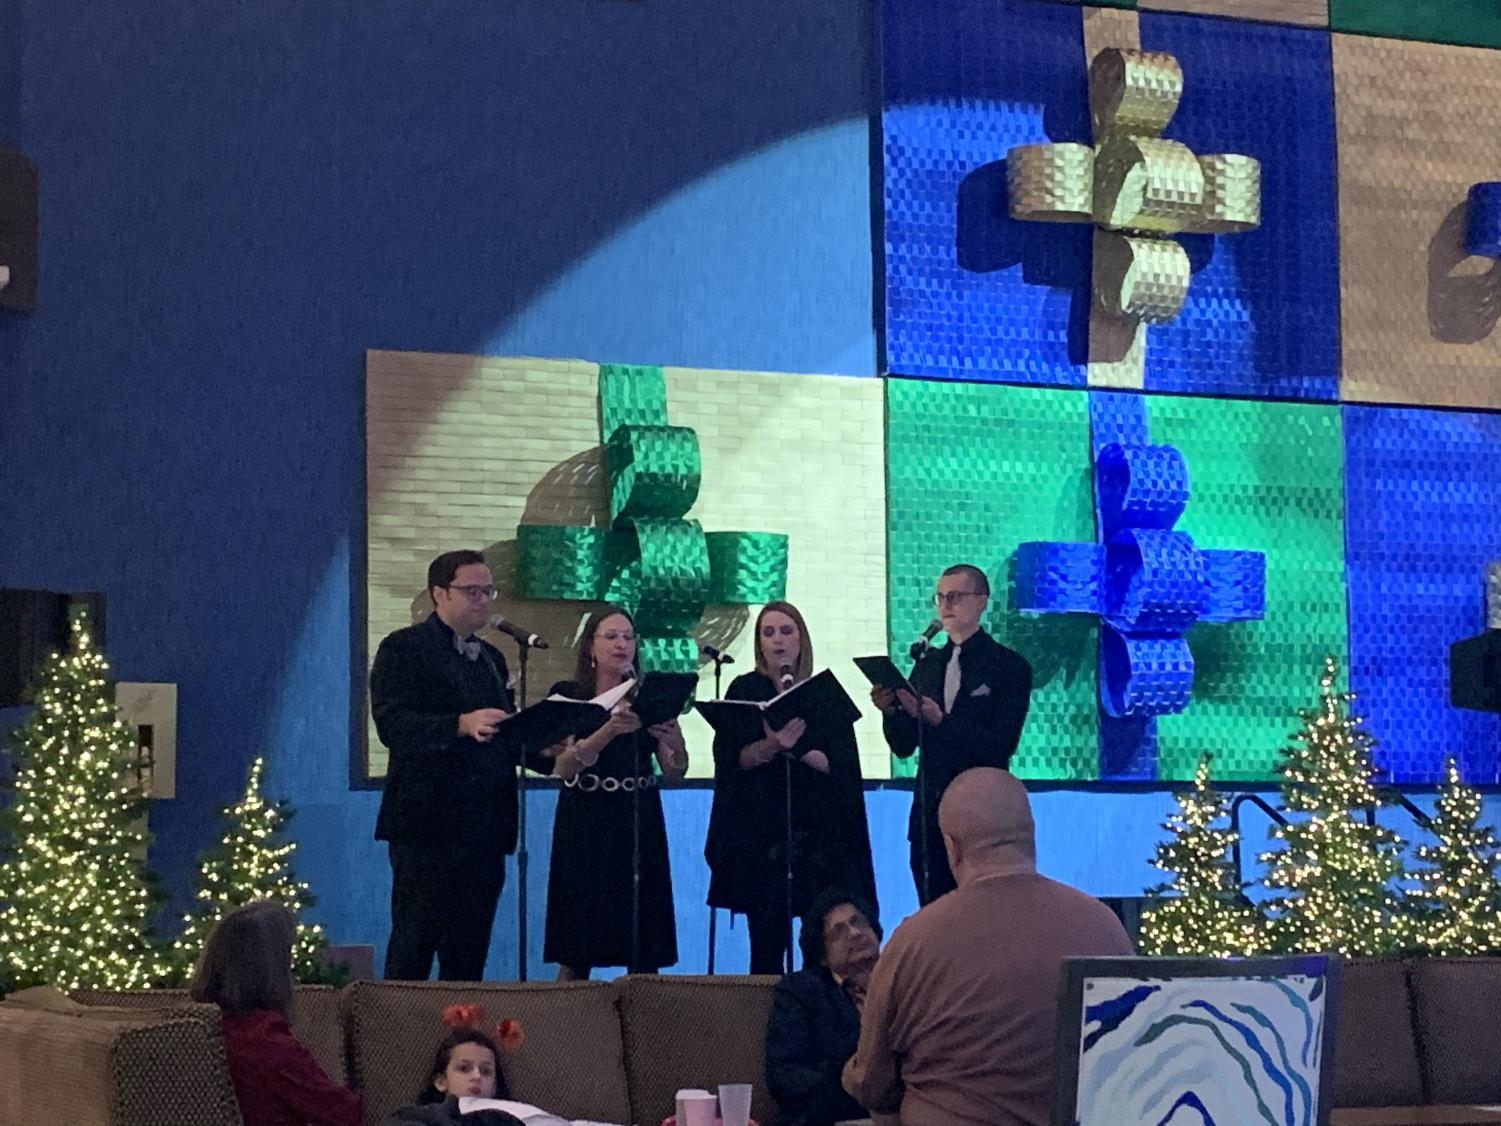 Chorus+Austin+performs+holiday+music+to+entertain+the+many+guests+enjoying+the+evening%27s+festivities.+The+stage+was+decorated+to+match+the+theme+as+well.